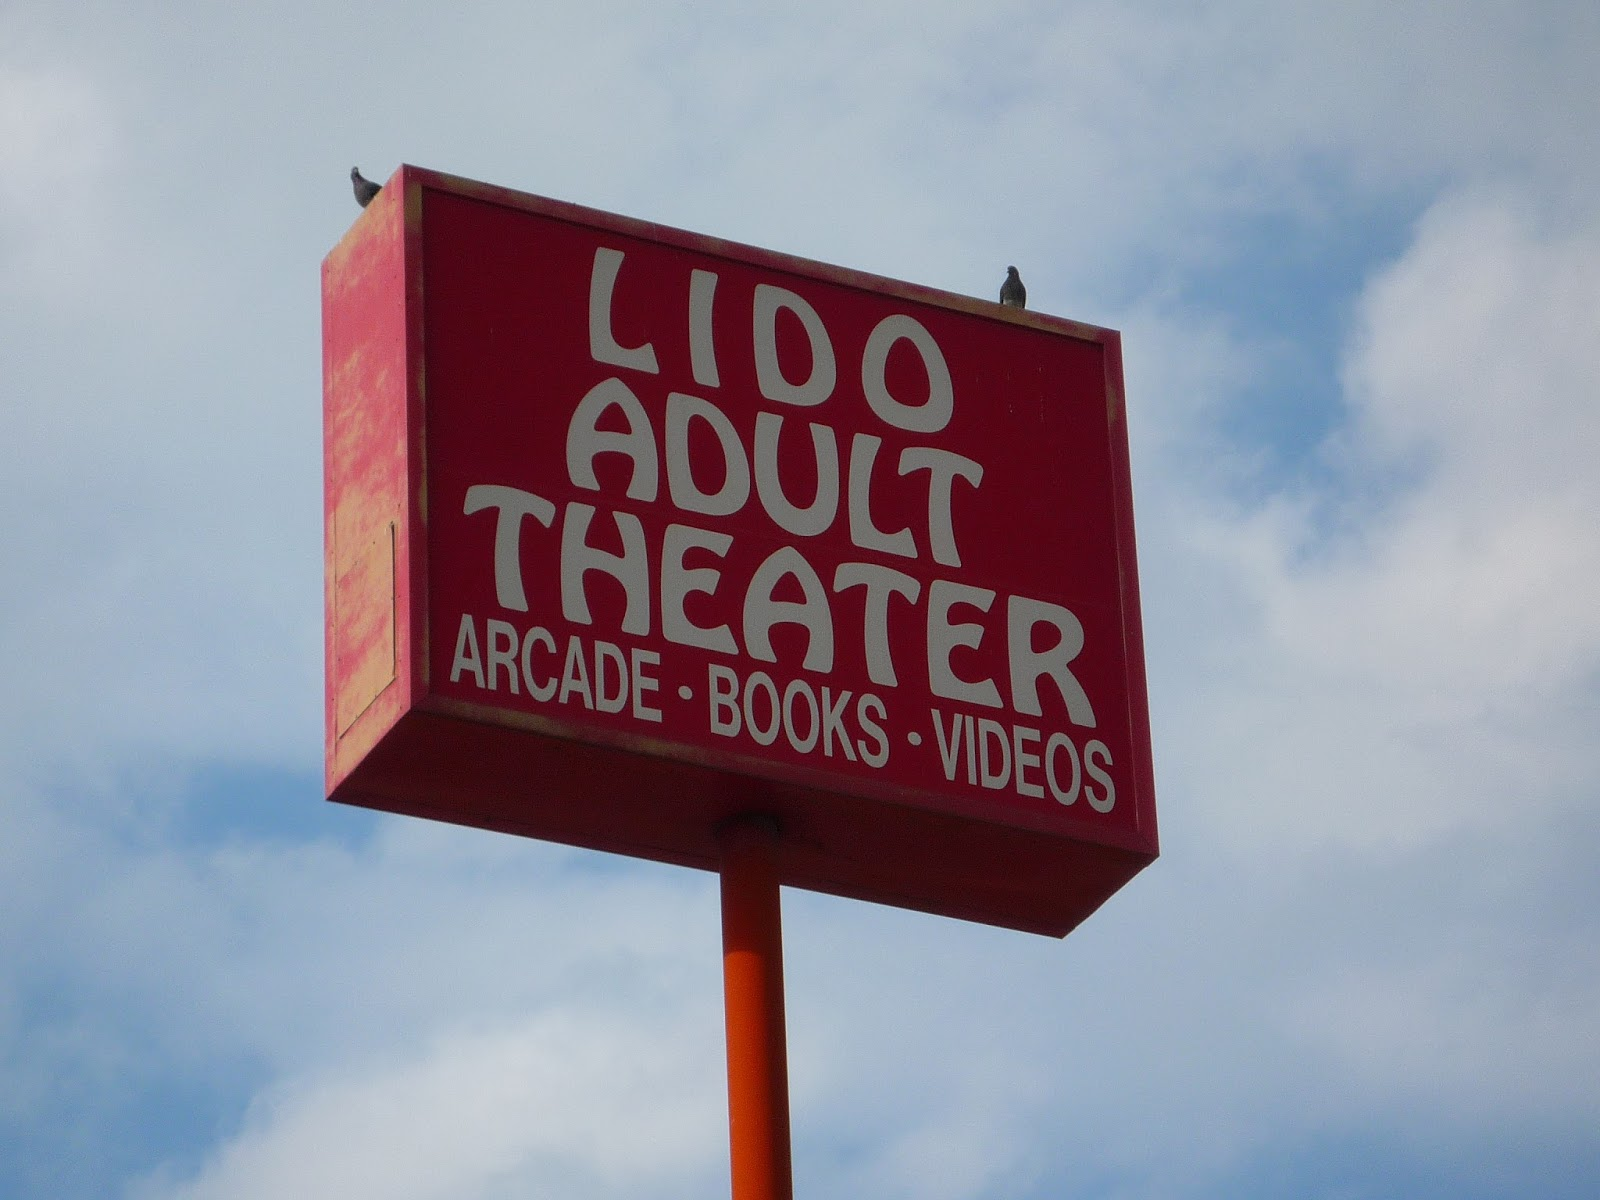 Only reserve, lido adult theater valuable opinion